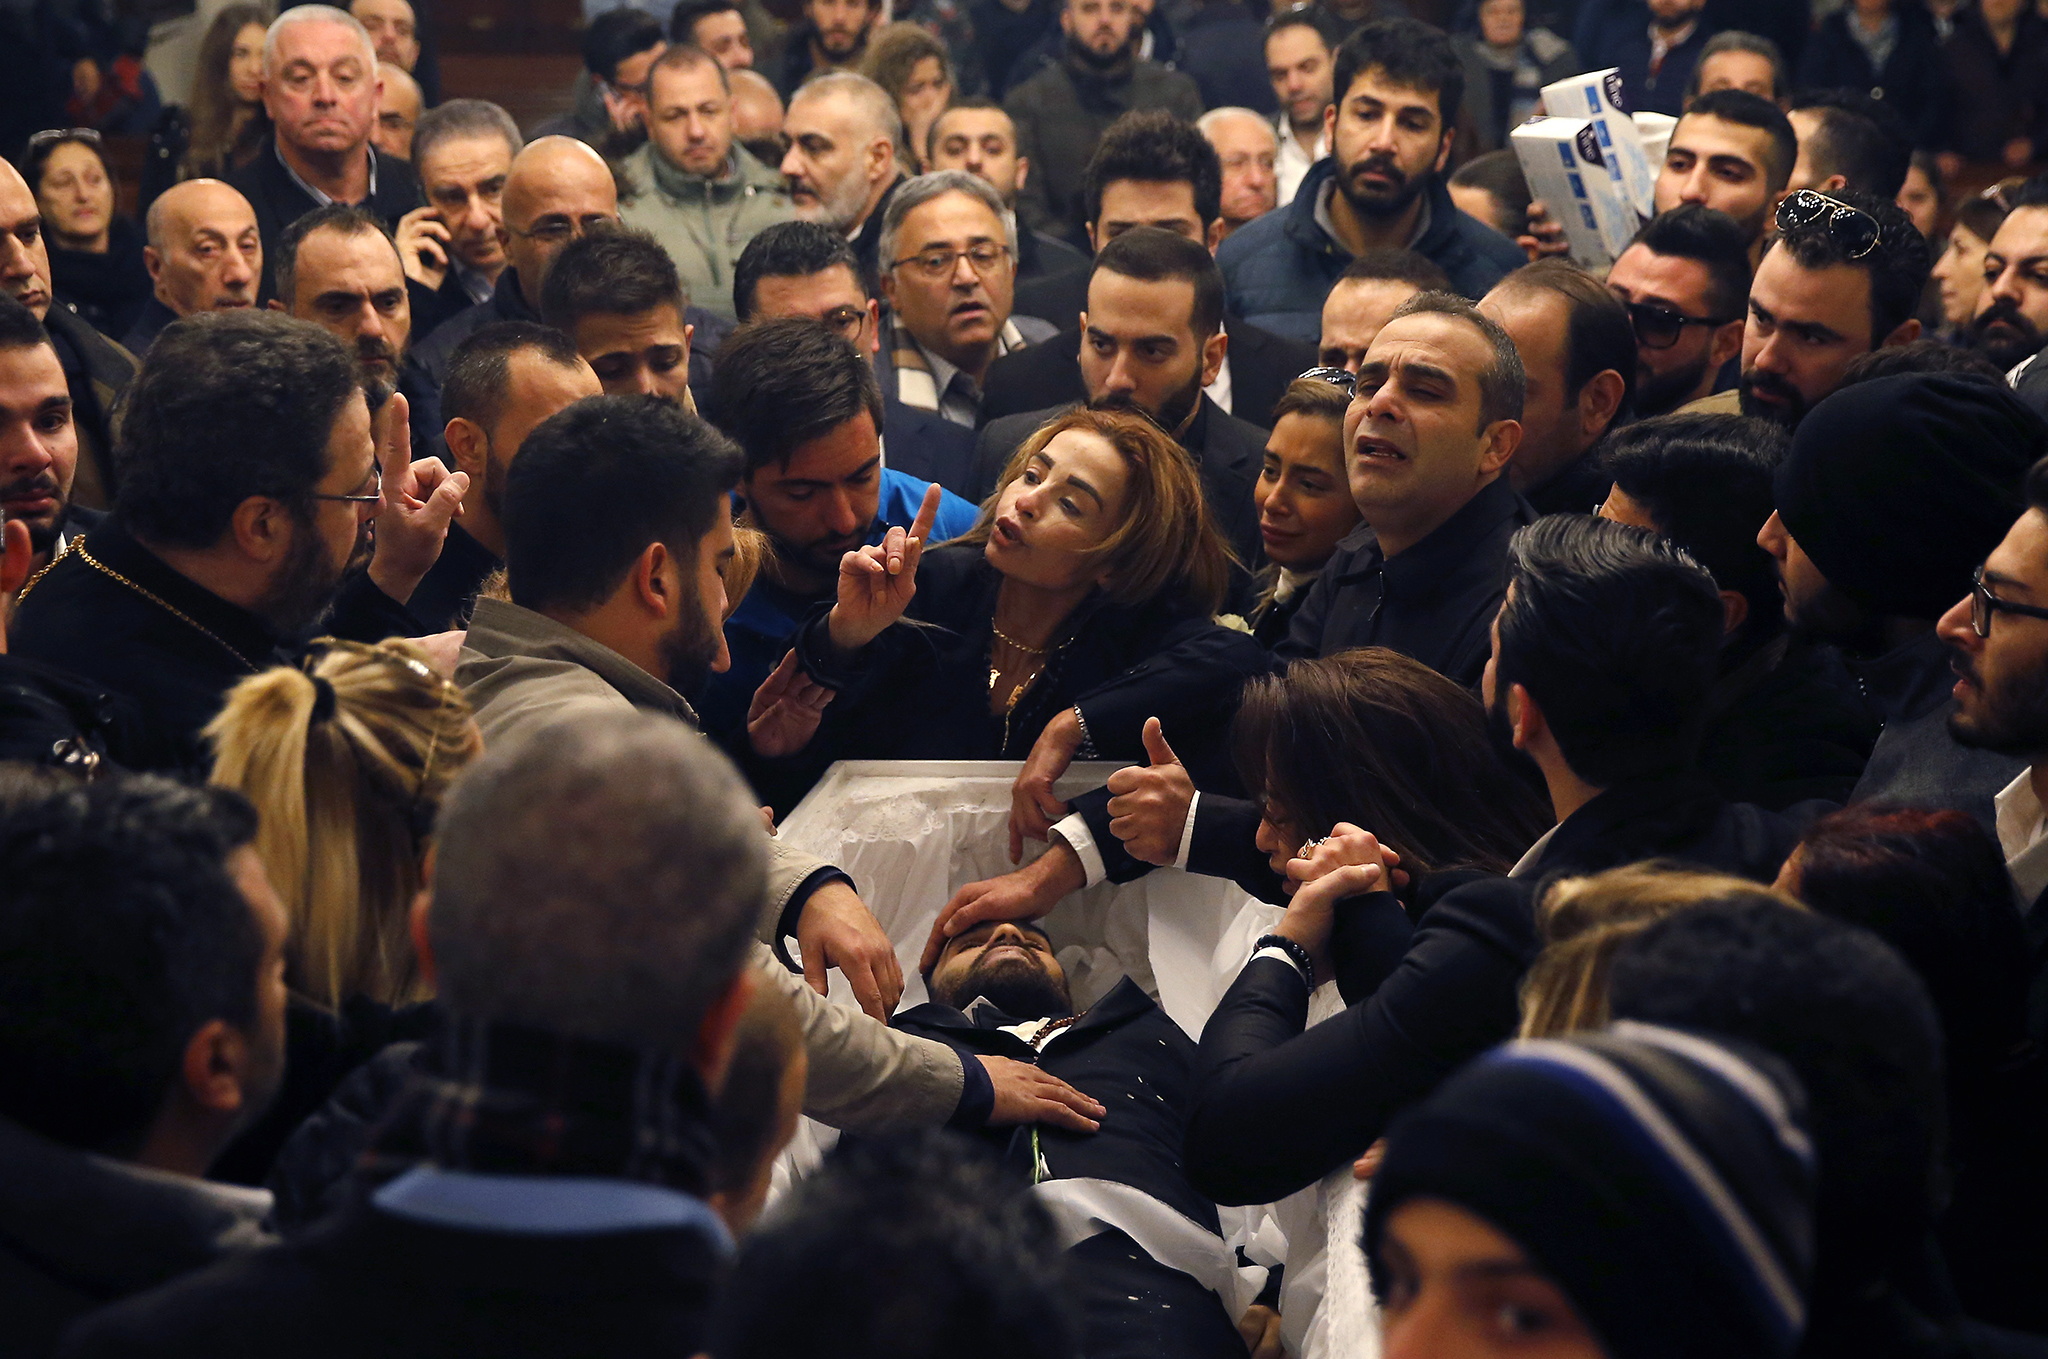 "The sister of Elias Wardini, center, a Lebanese man who was killed in the New Year's Eve Istanbul nightclub attack, mourns over her brother's body during his funeral procession at a church, in Beirut, Lebanon, Tuesday, Jan. 3, 2017. The gunman killed 39 people, most of them foreigners, including three Lebanese citizens, at the Istanbul nightclub. The Islamic State group claimed the attack on Monday, saying a ""soldier of the caliphate"" had carried out the mass shooting in response to Turkish military operations against IS in northern Syria. (AP Photo/Hussein Malla)"